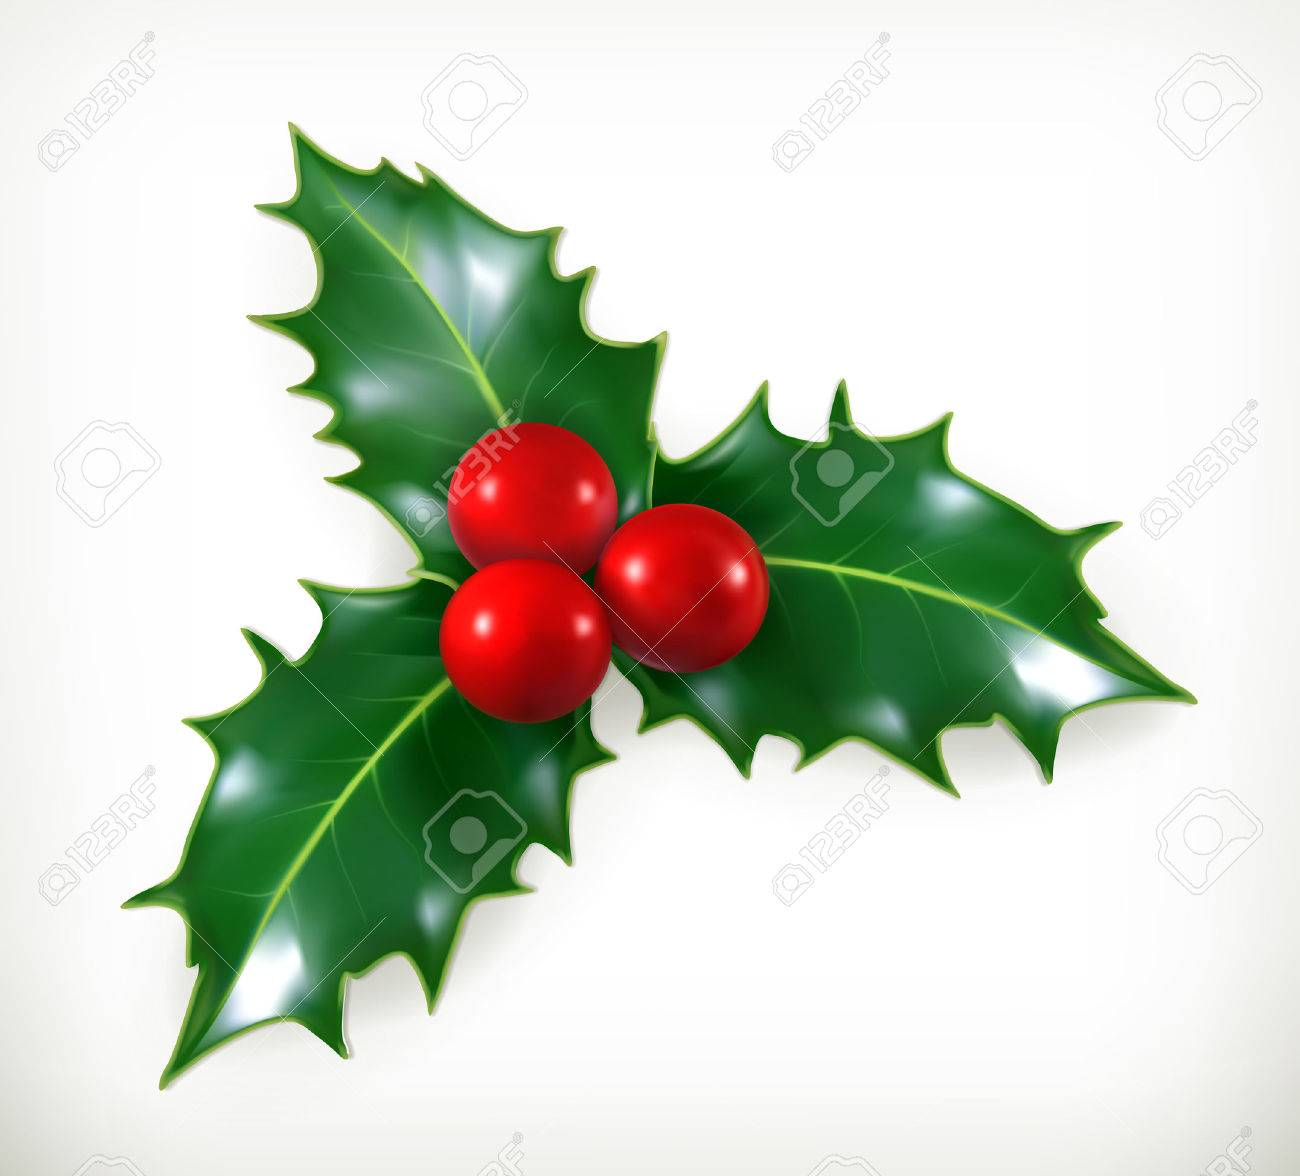 Holly, traditional Christmas decoration vector icon Stock Vector - 33286741